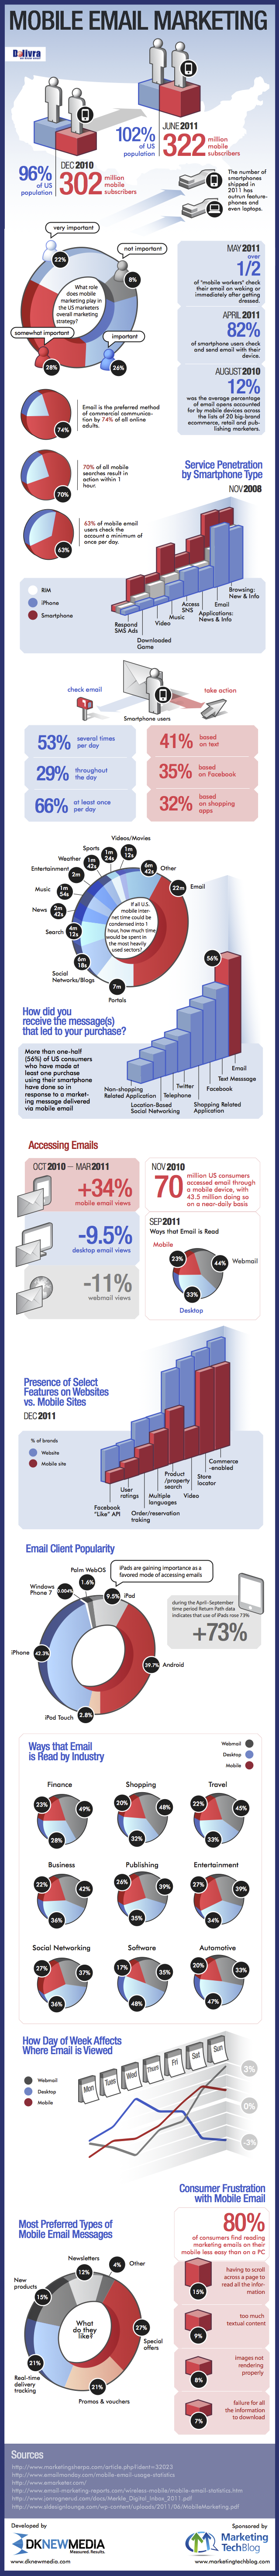 Mobile Email Marketing Infographic